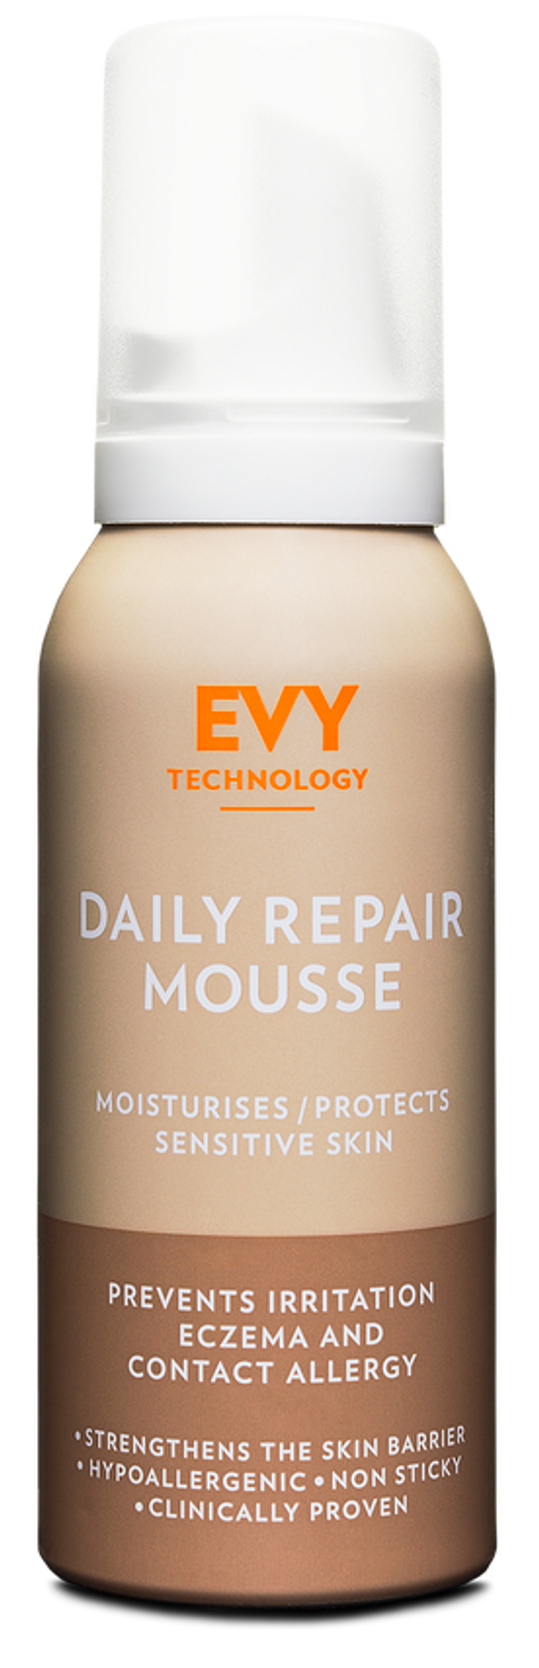 scandi b EVY_DailyRepairMousse-1